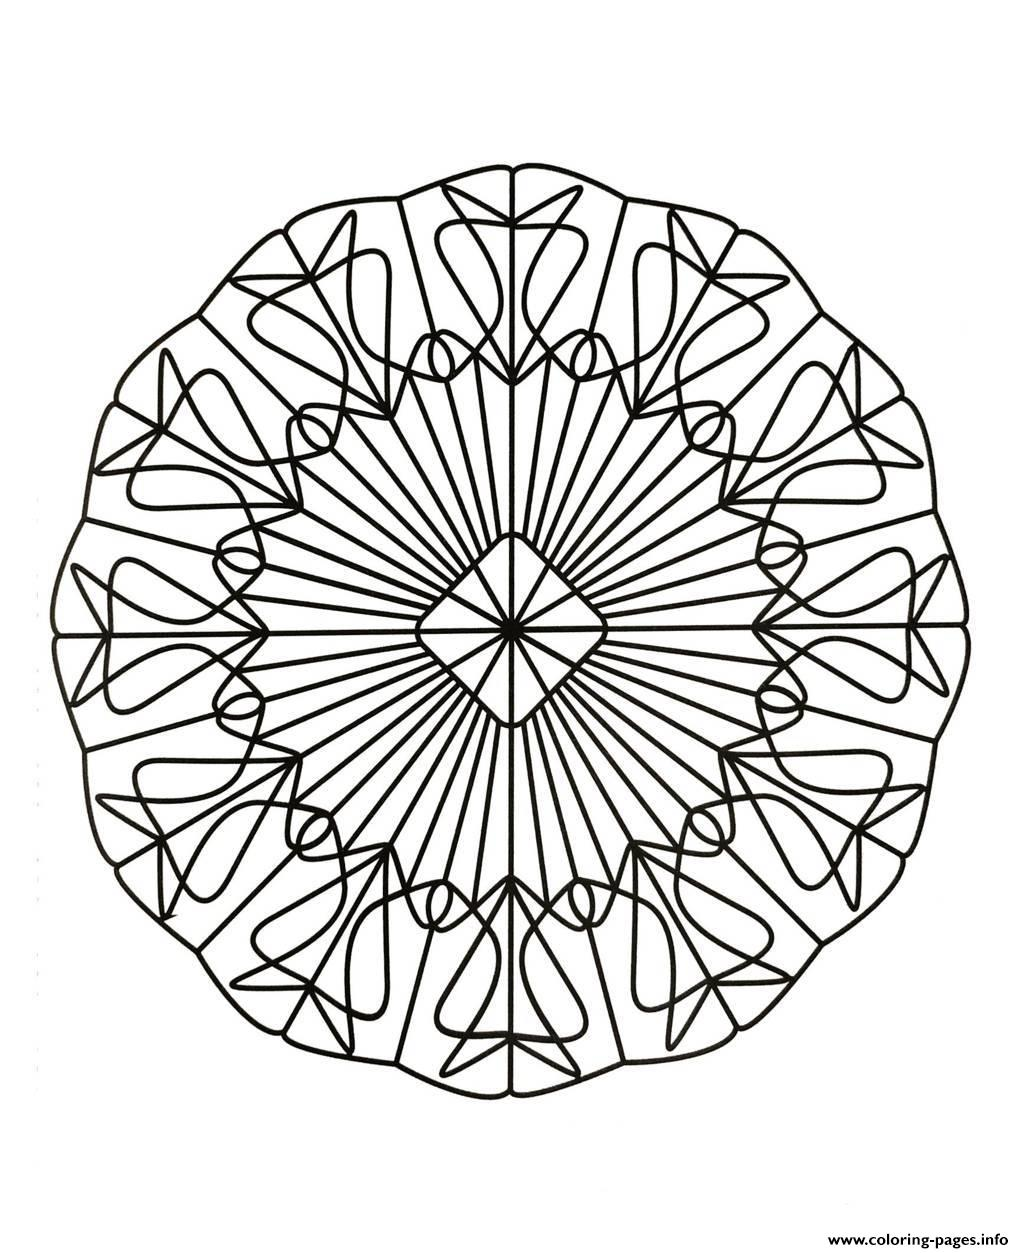 Mandalas To Download For Free 2 Coloring Pages Printable | free printable coloring pages mandalas